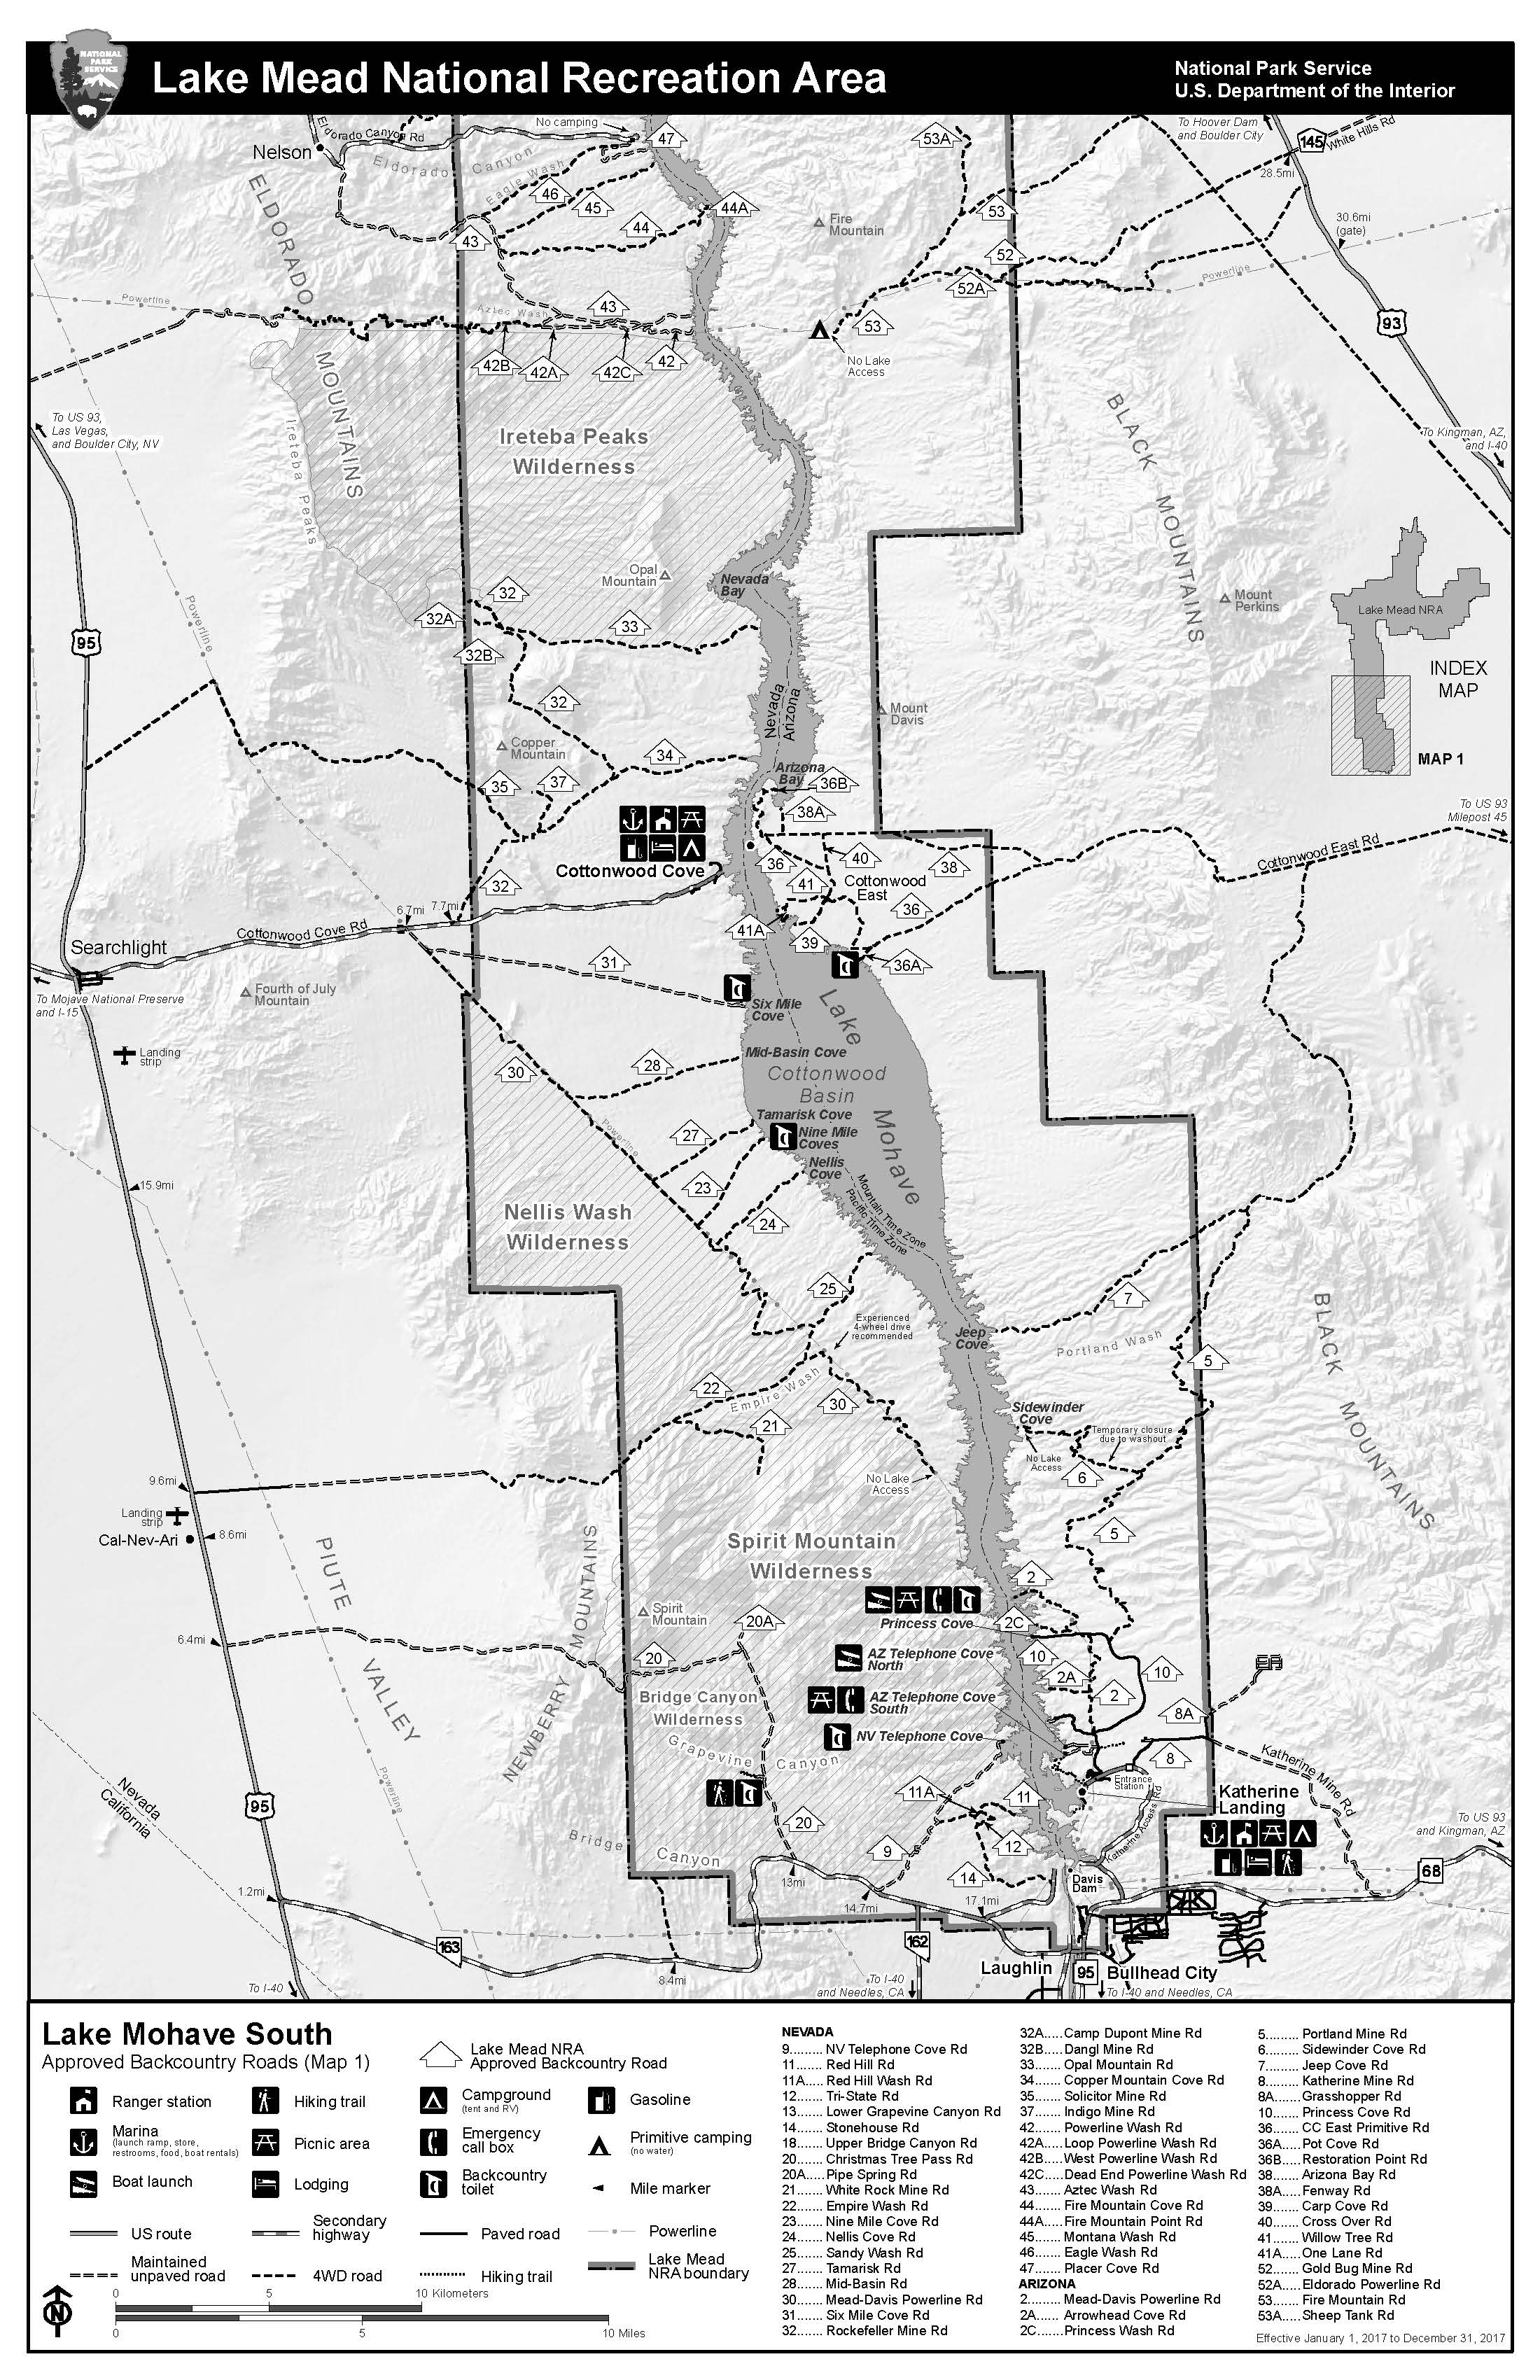 Maps Lake Mead National Recreation Area US National Park Service